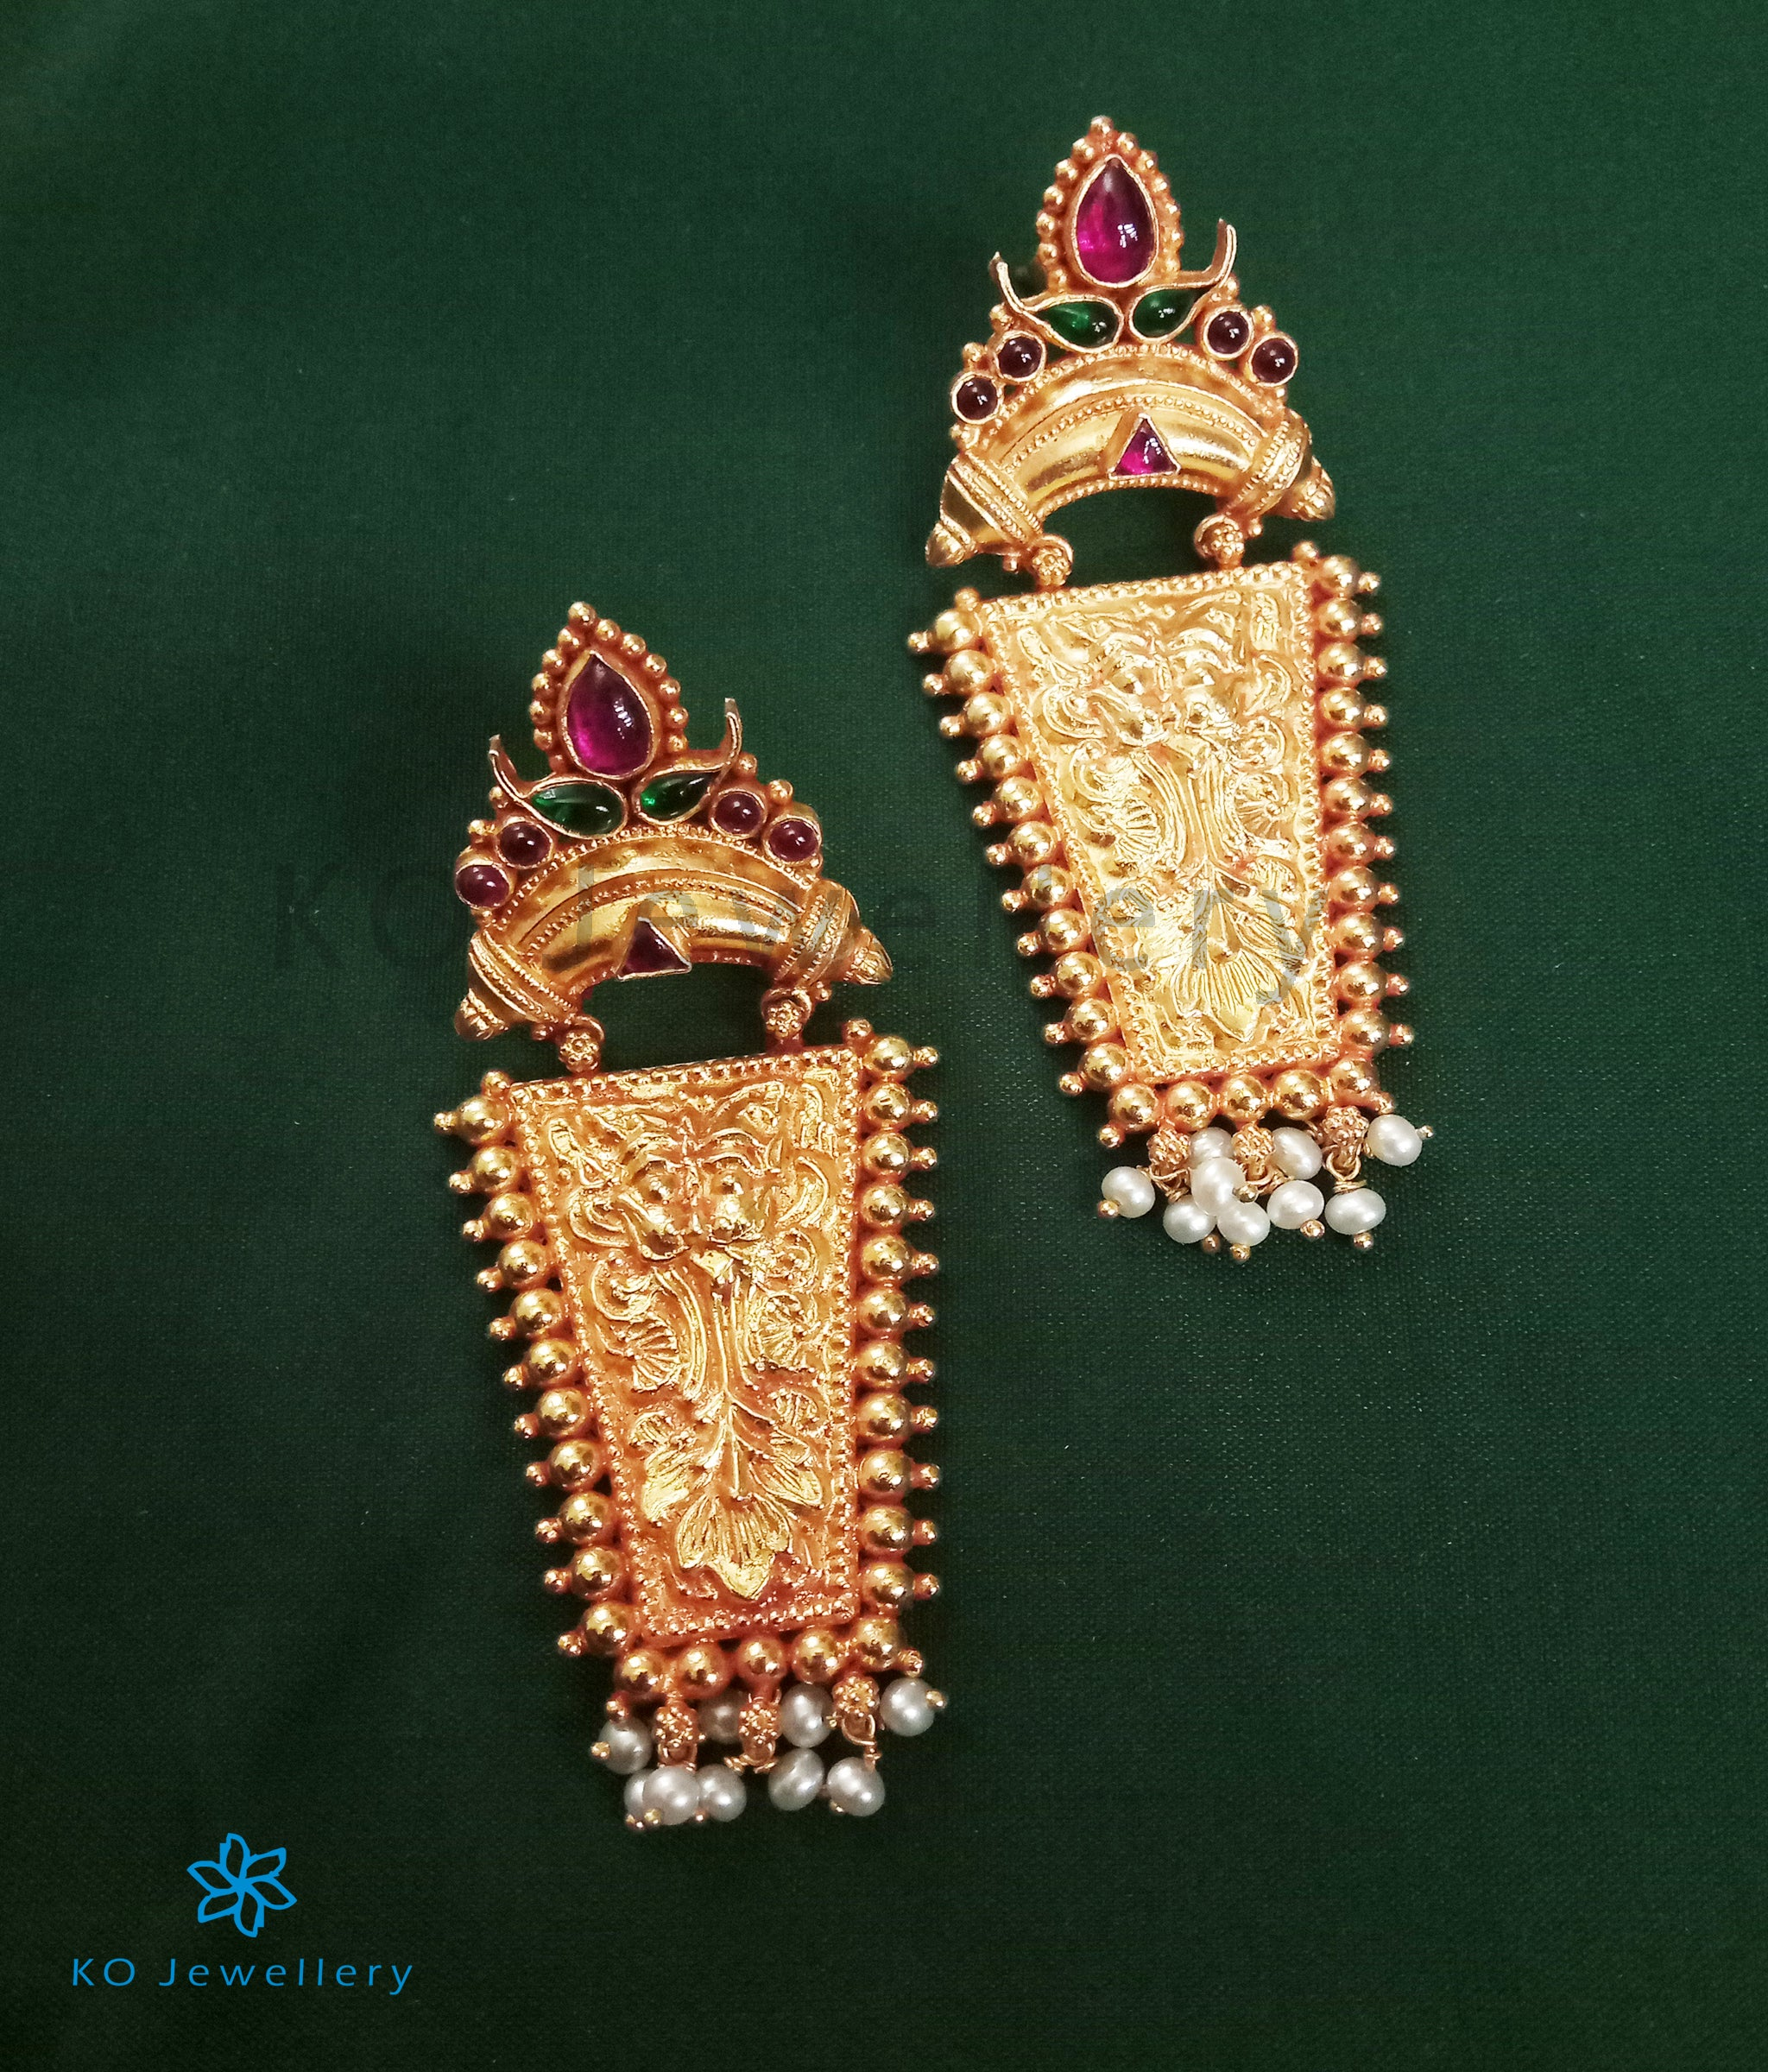 03c0e8d9e82 The Srjati Silver Antique Earrings-Buy Authentic Temple Jewellery Online -  KO Jewellery